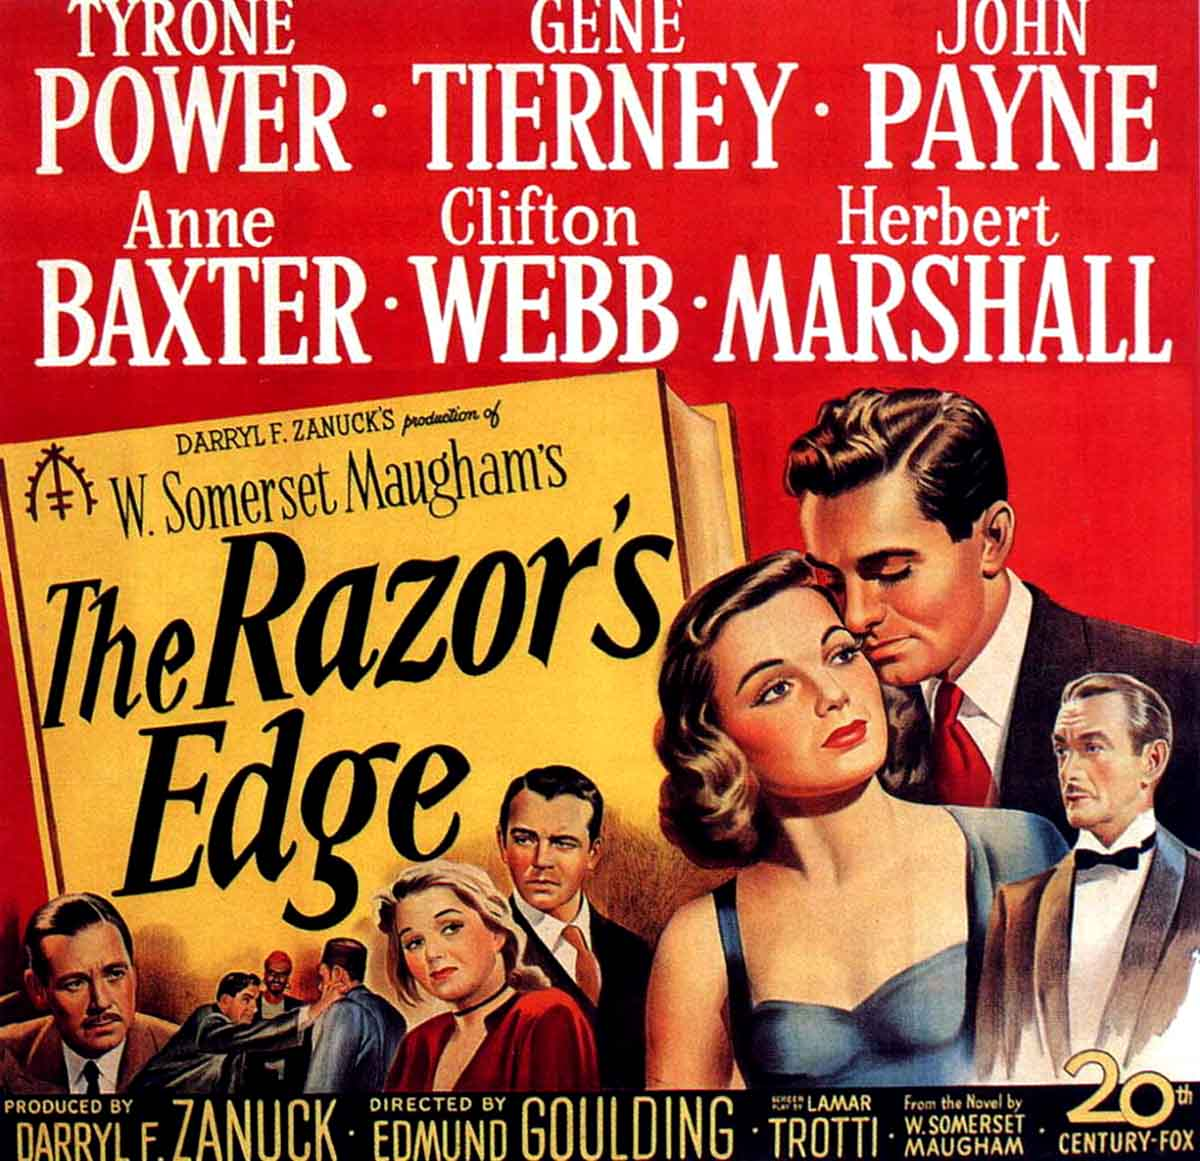 Happyotter: THE RAZOR'S EDGE (1946)